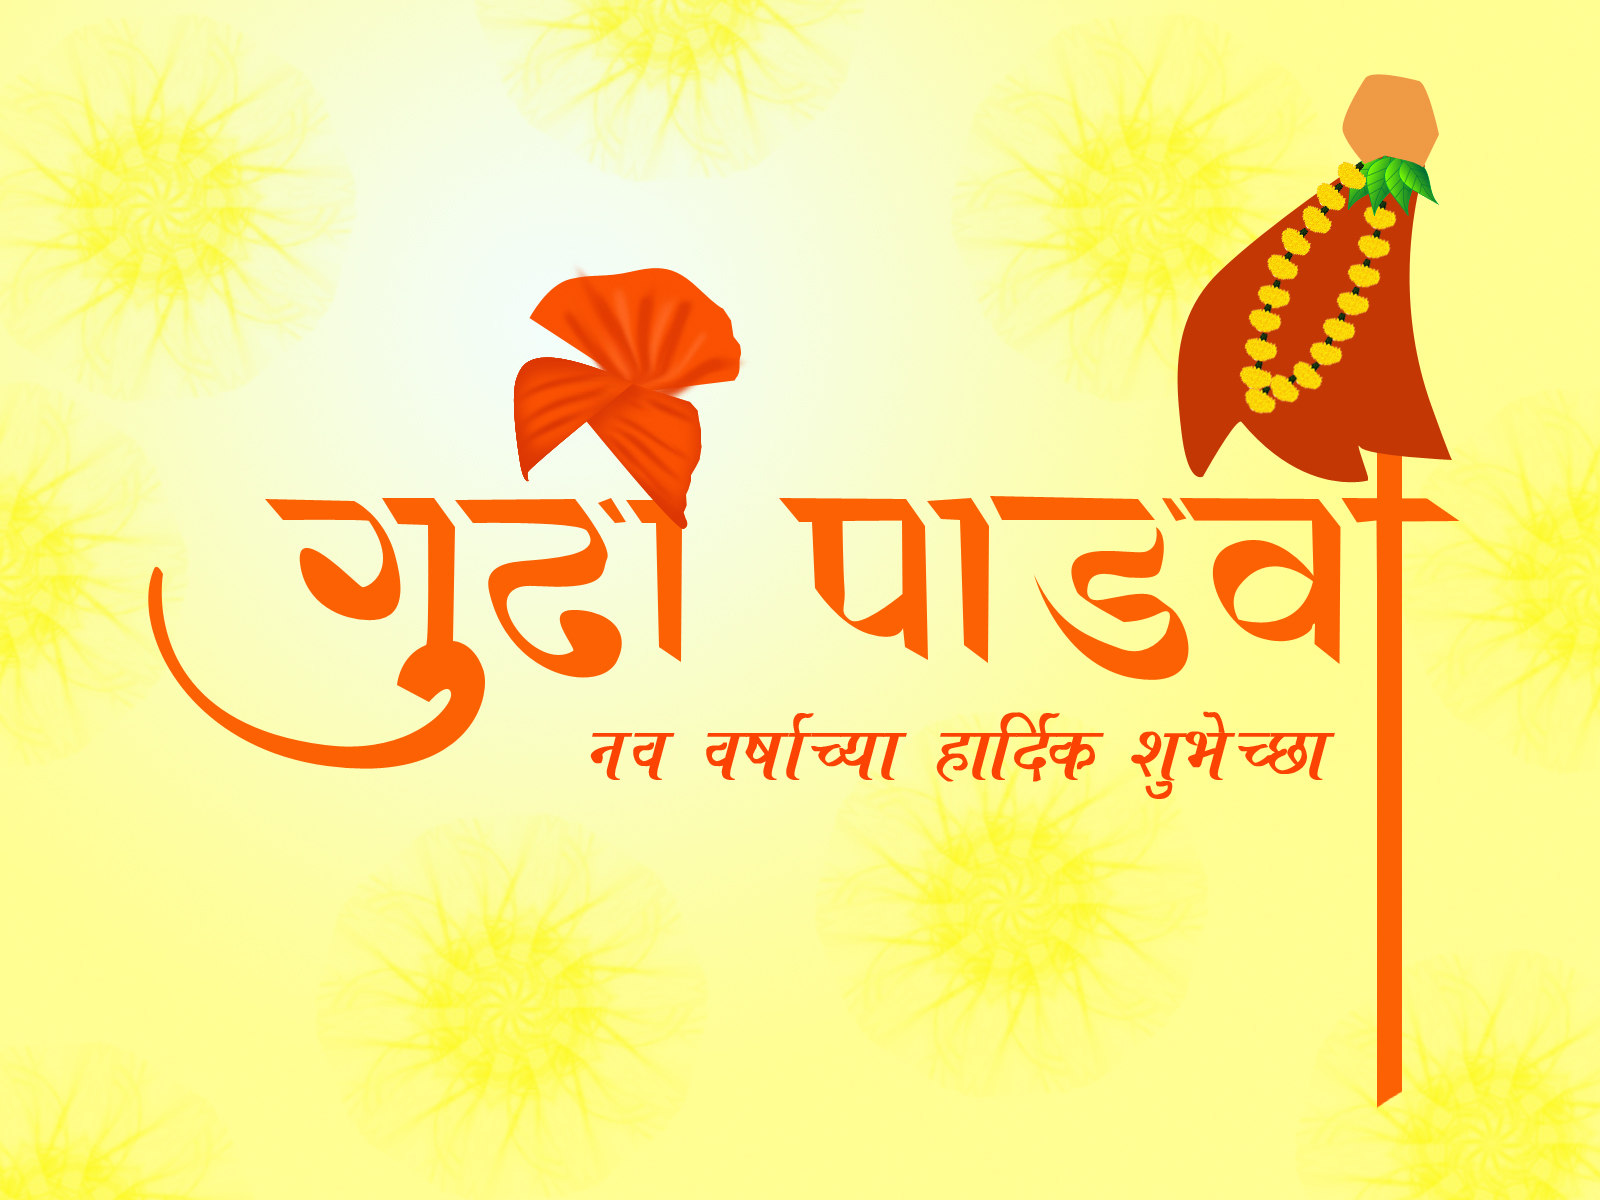 Happy gudi padwa whatsapp status messages whatsapp lover gudi padwa marathi message status for whatsapp m4hsunfo